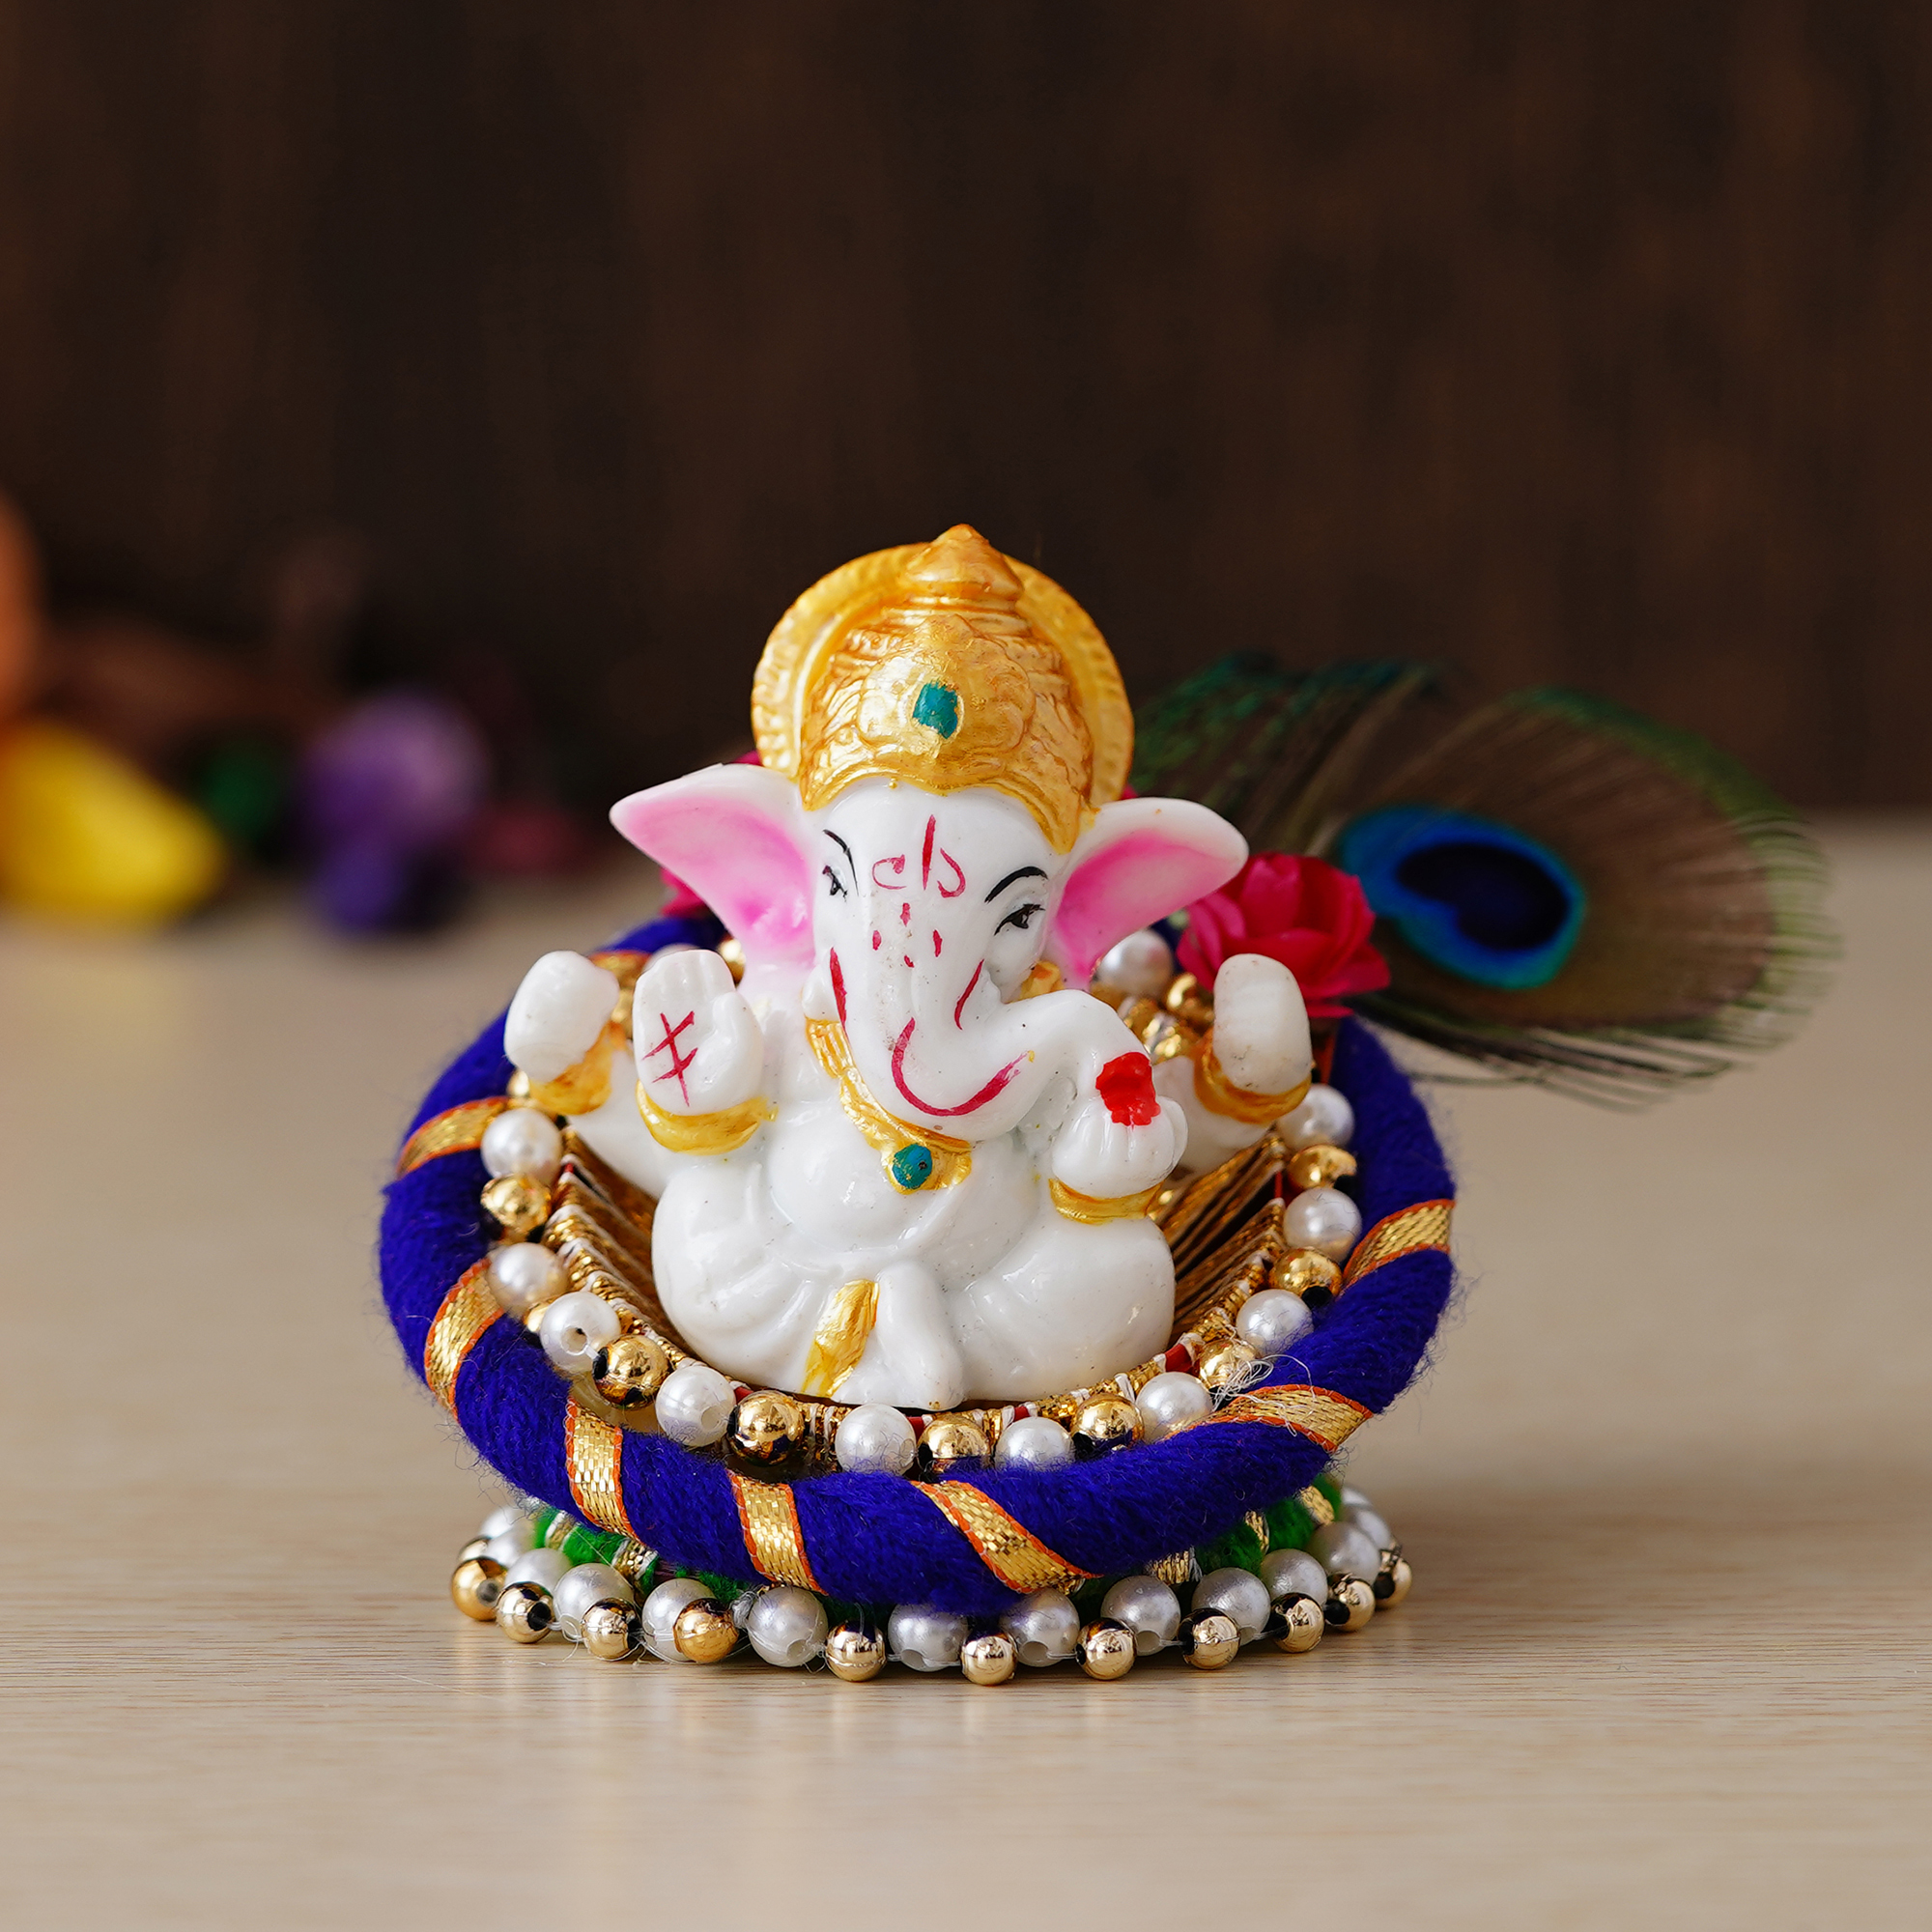 Lord Ganesha Idol on Decorative Handcrafted Floral Plate for Home and Car Indian Home Decor